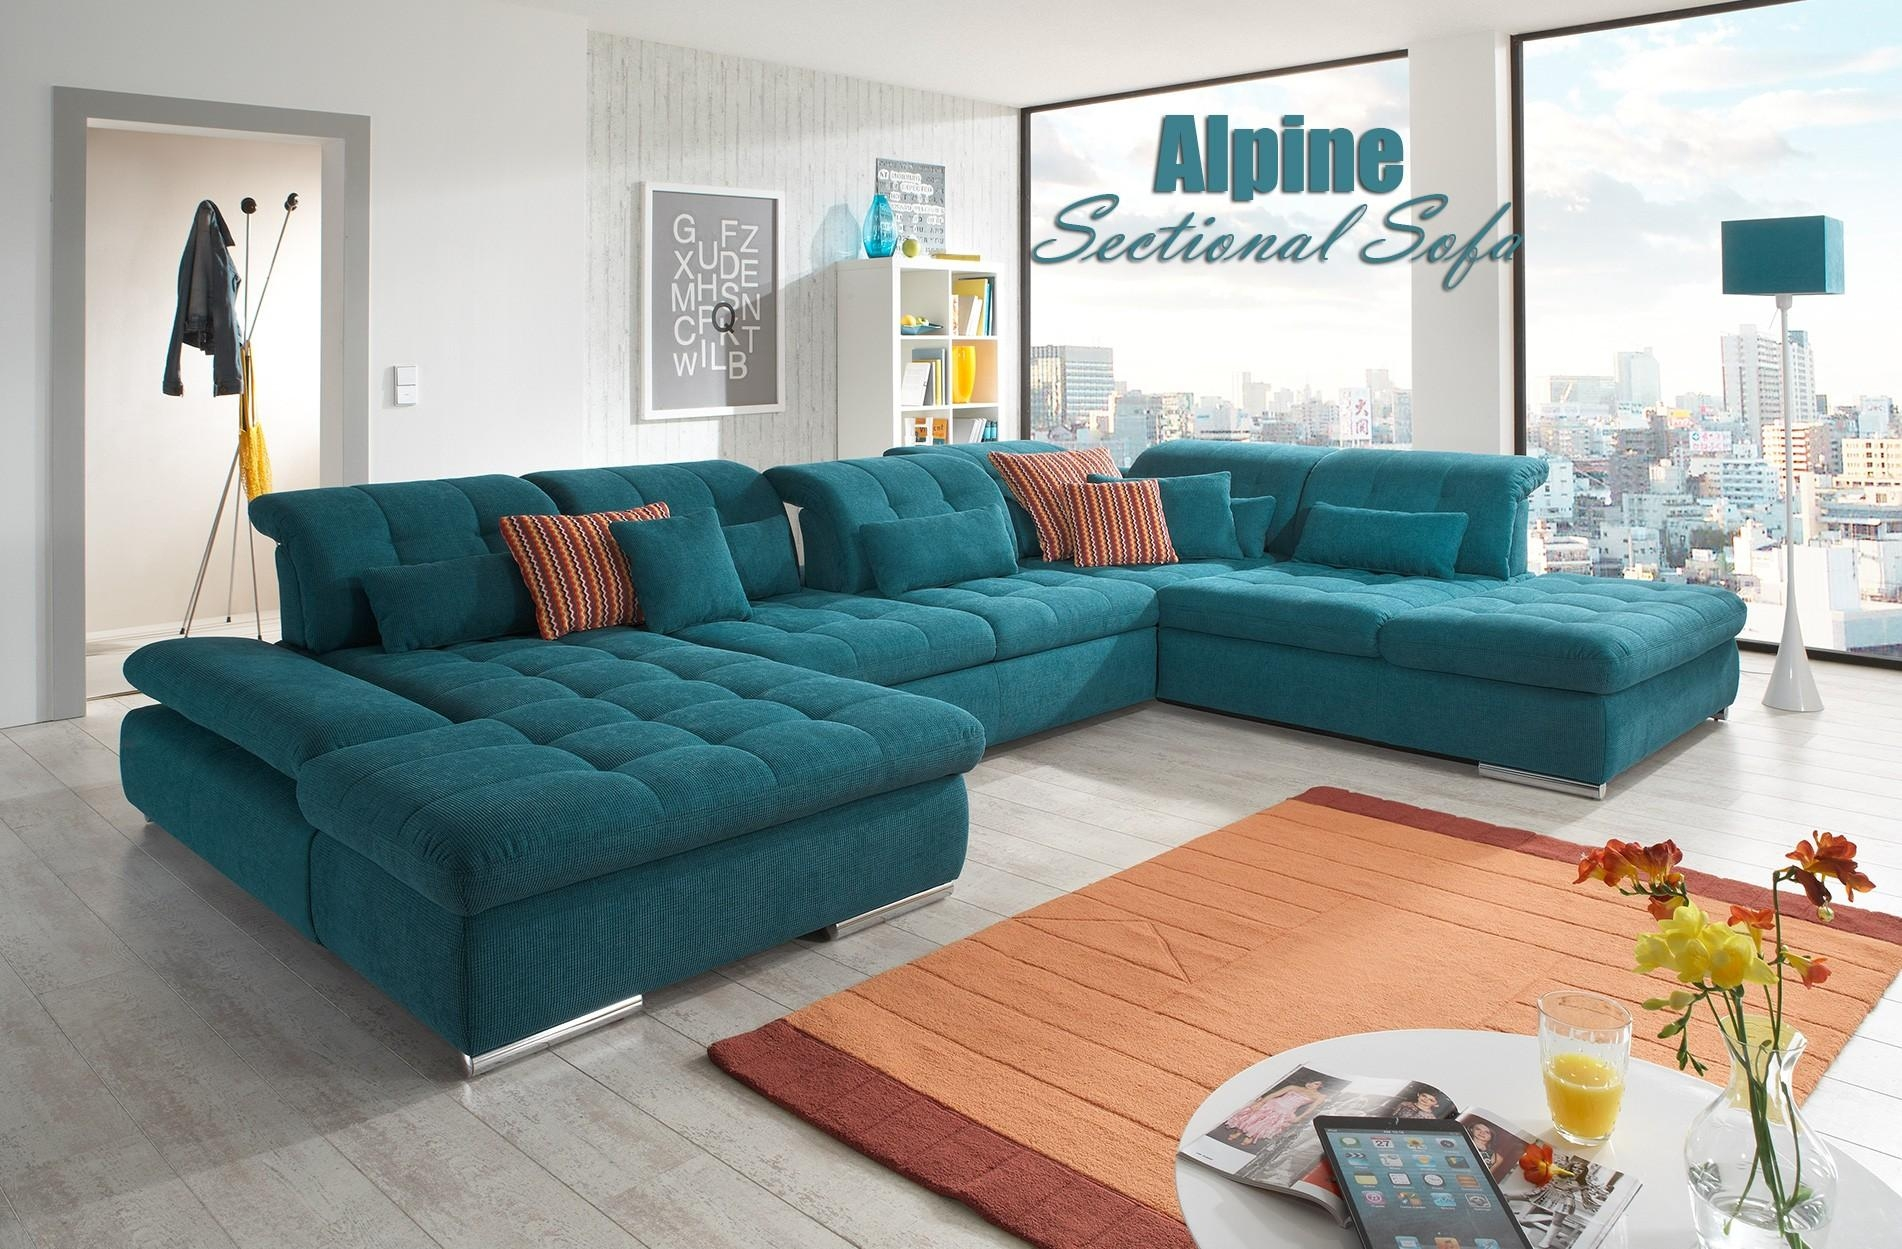 Alpine Sectional Sofa In Green Fabric Within Green Sectional Sofa (Image 3 of 15)